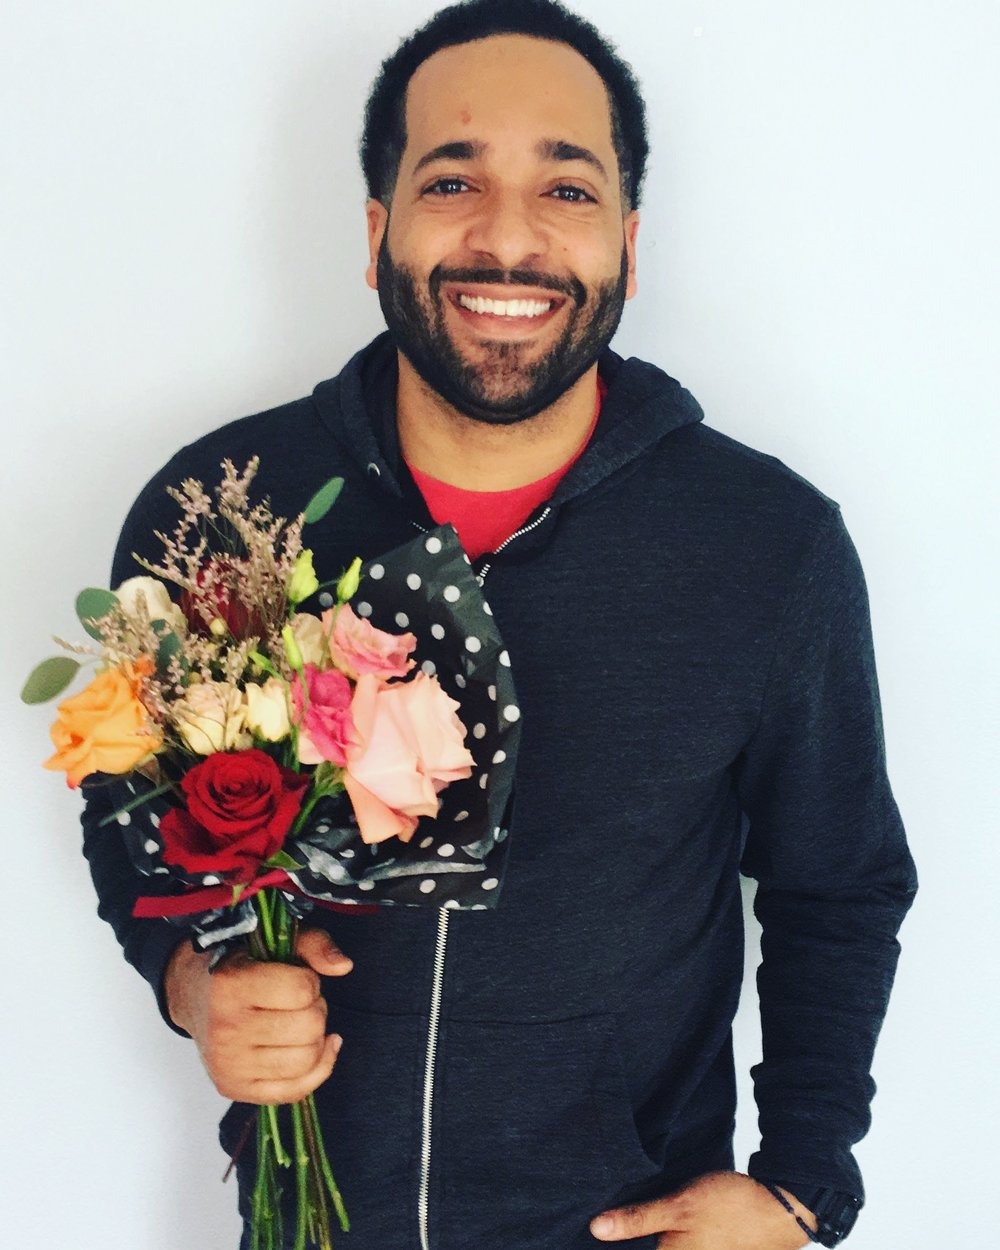 Our first Save-the-Bouquet Day customer, Dorian!